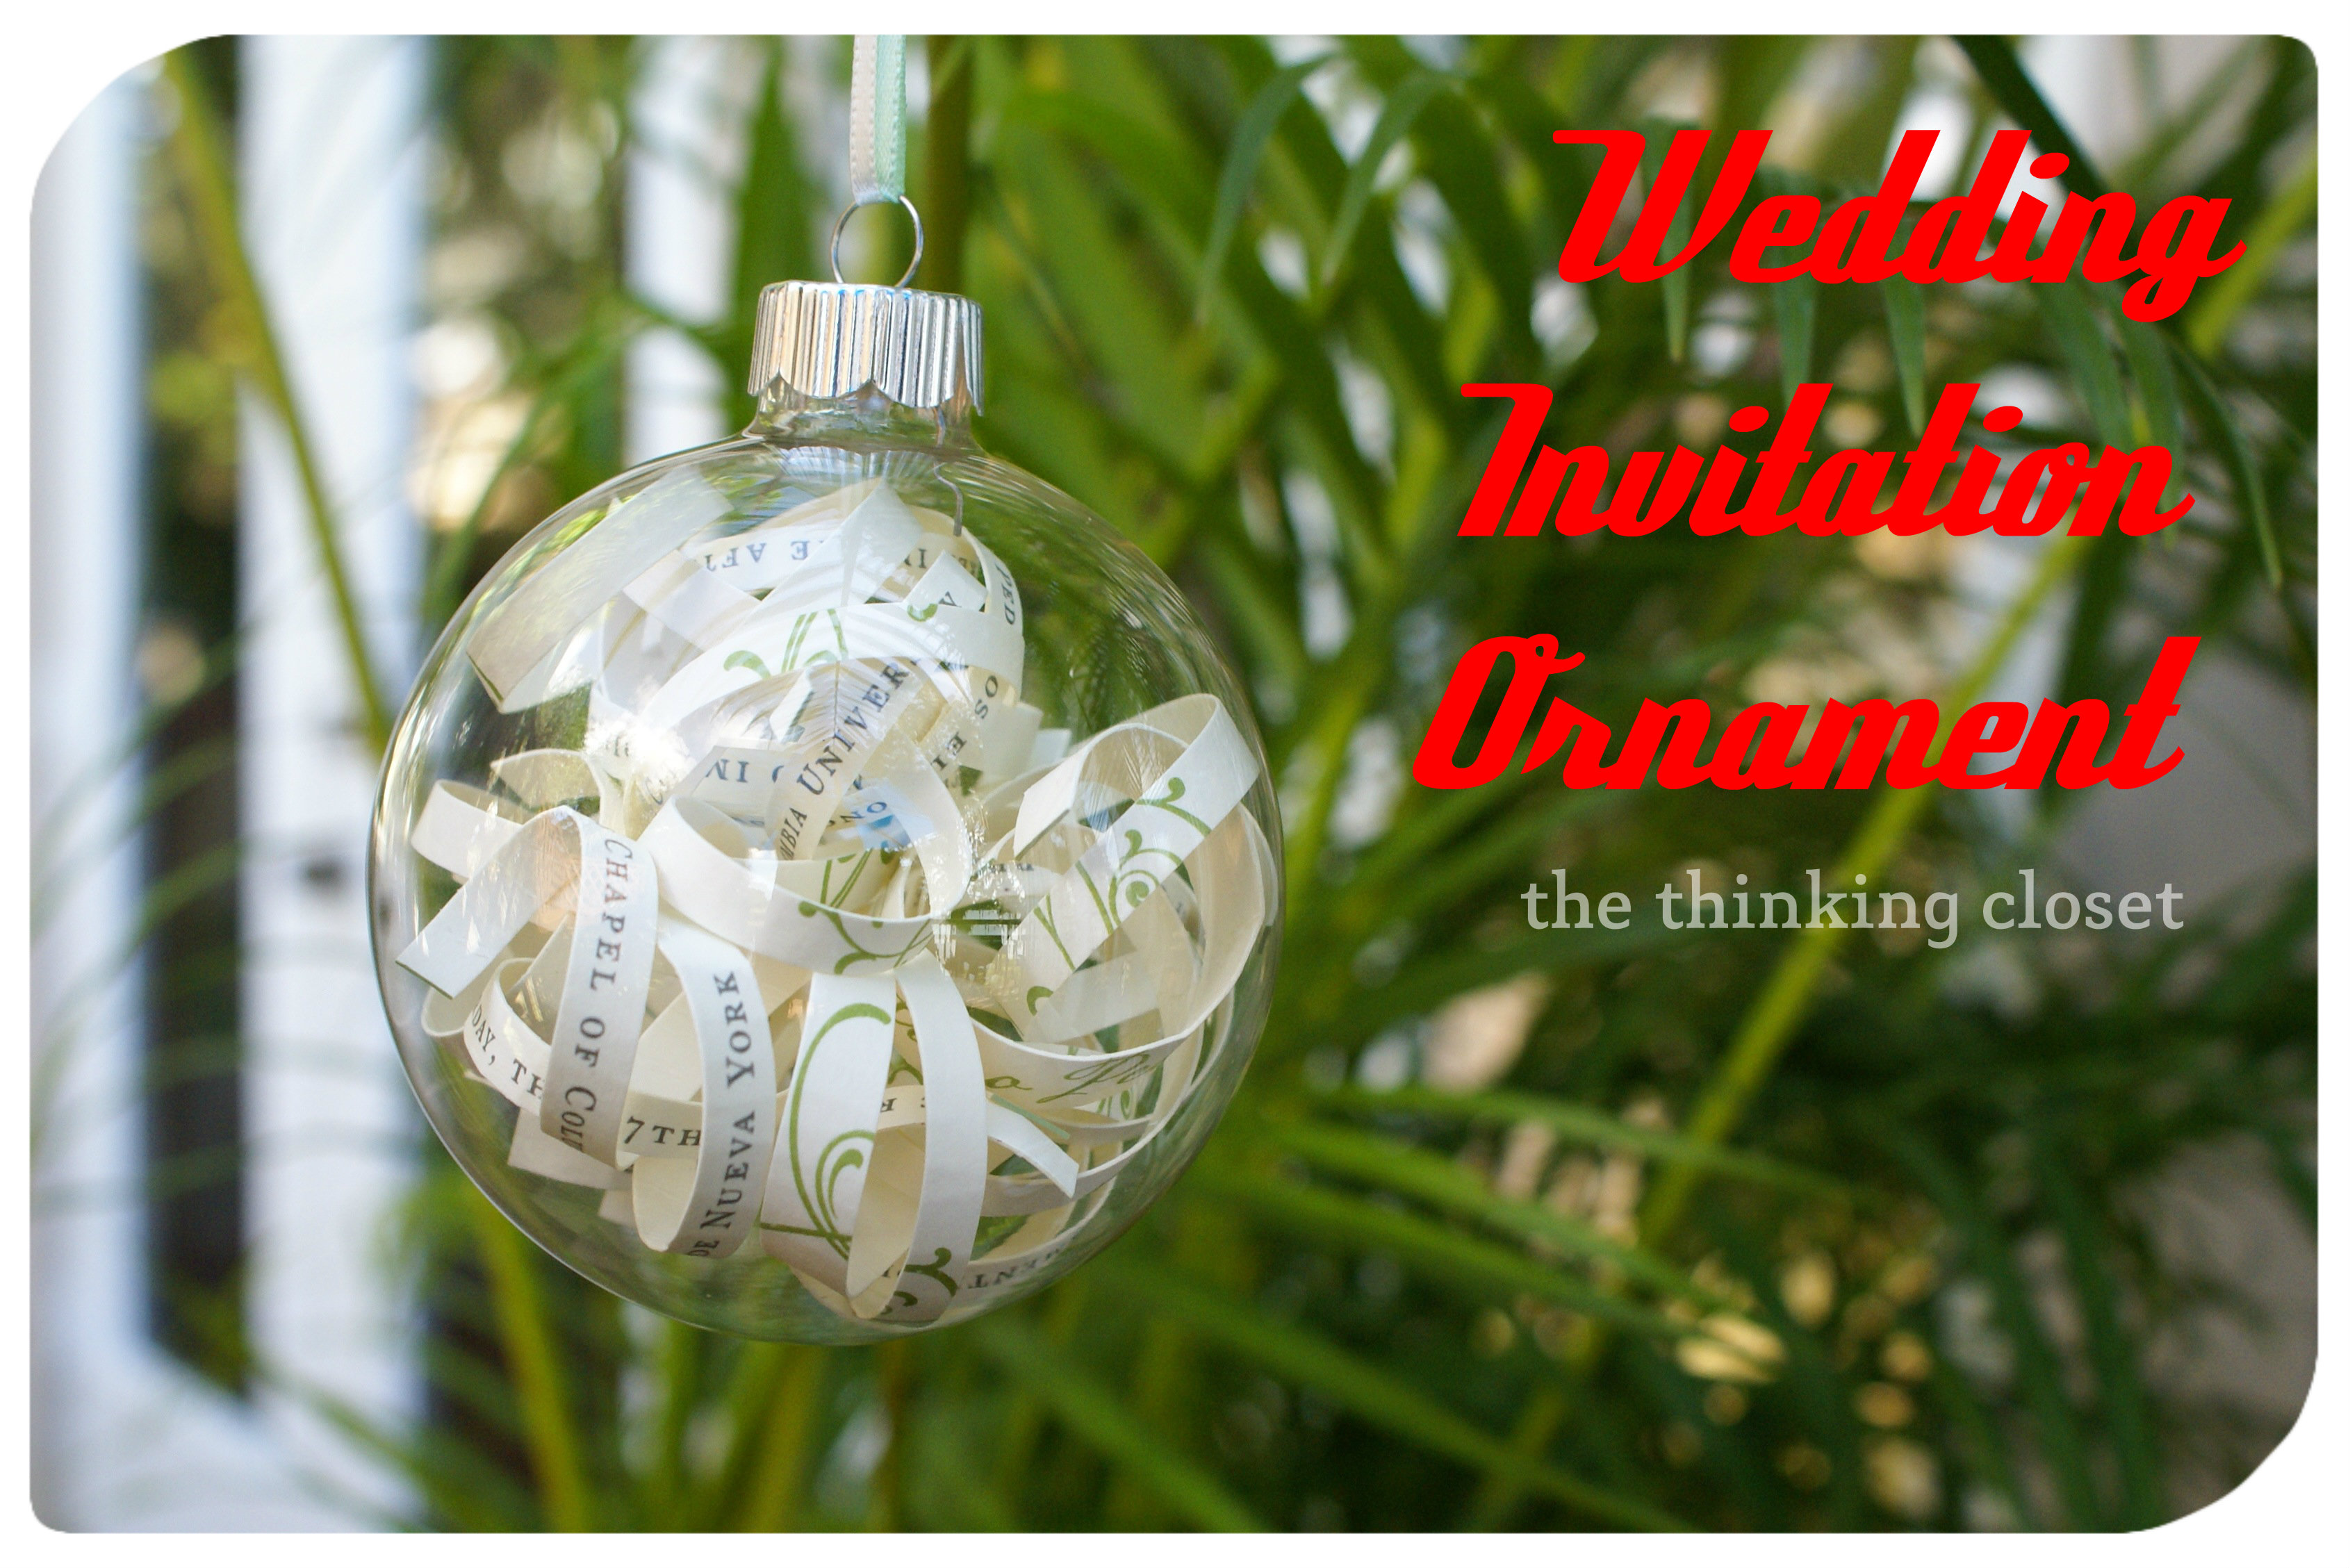 DIY Wedding Invitation Ornament via The Thinking Closet